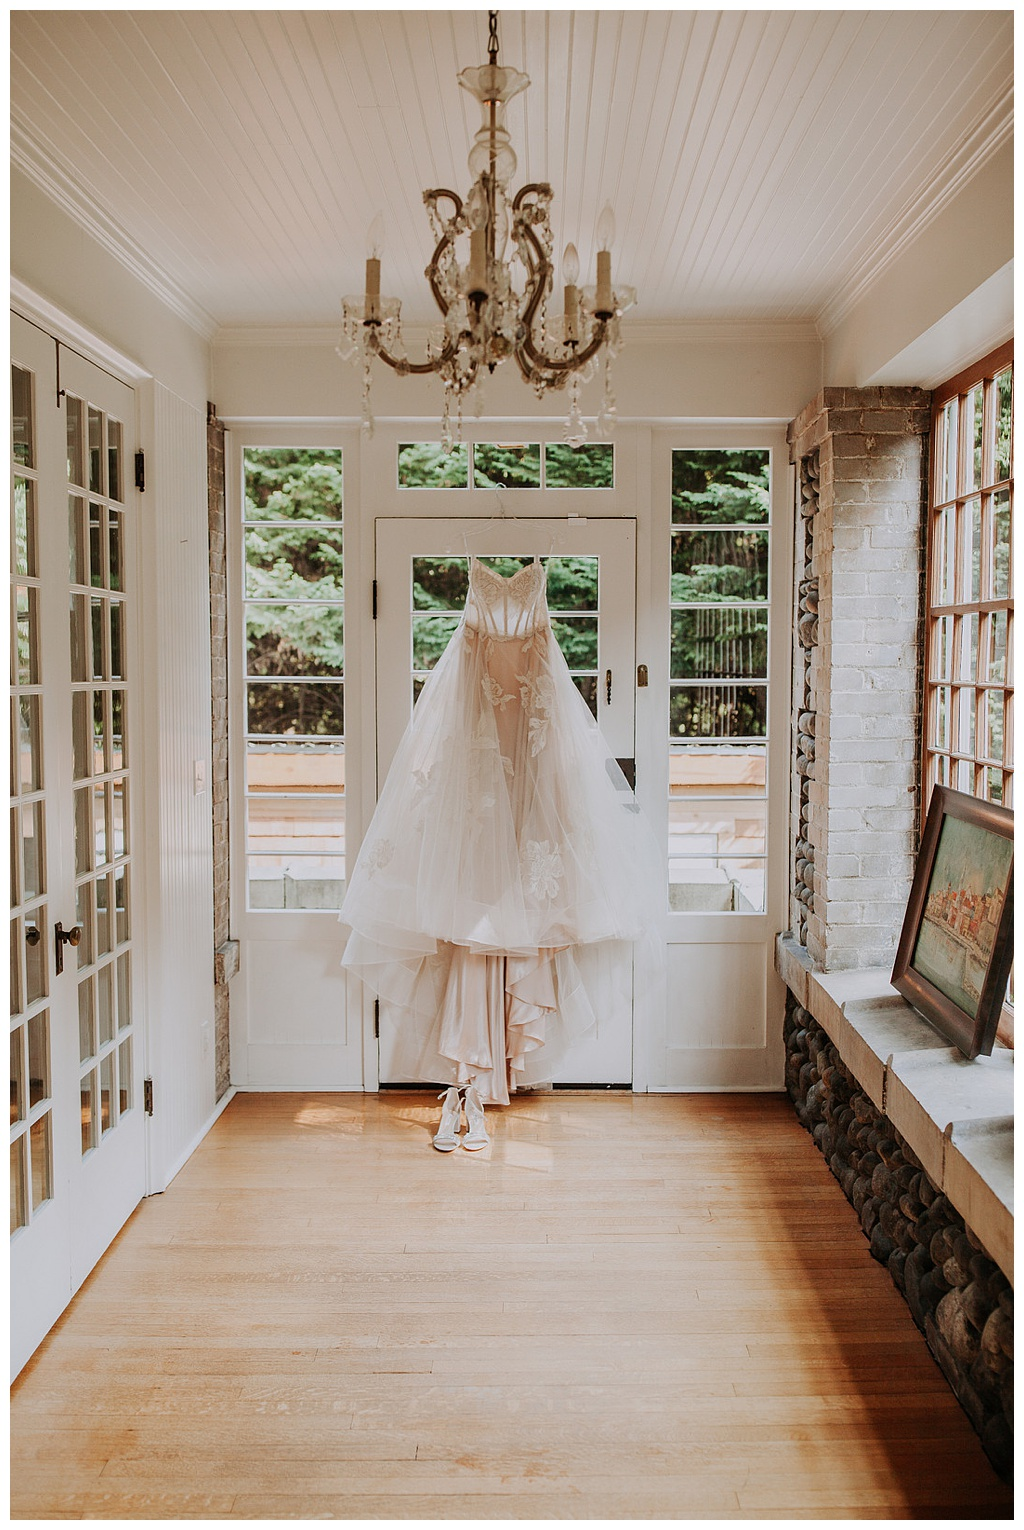 a wedding dress hanging from the window in a greenhouse room with a chandelier